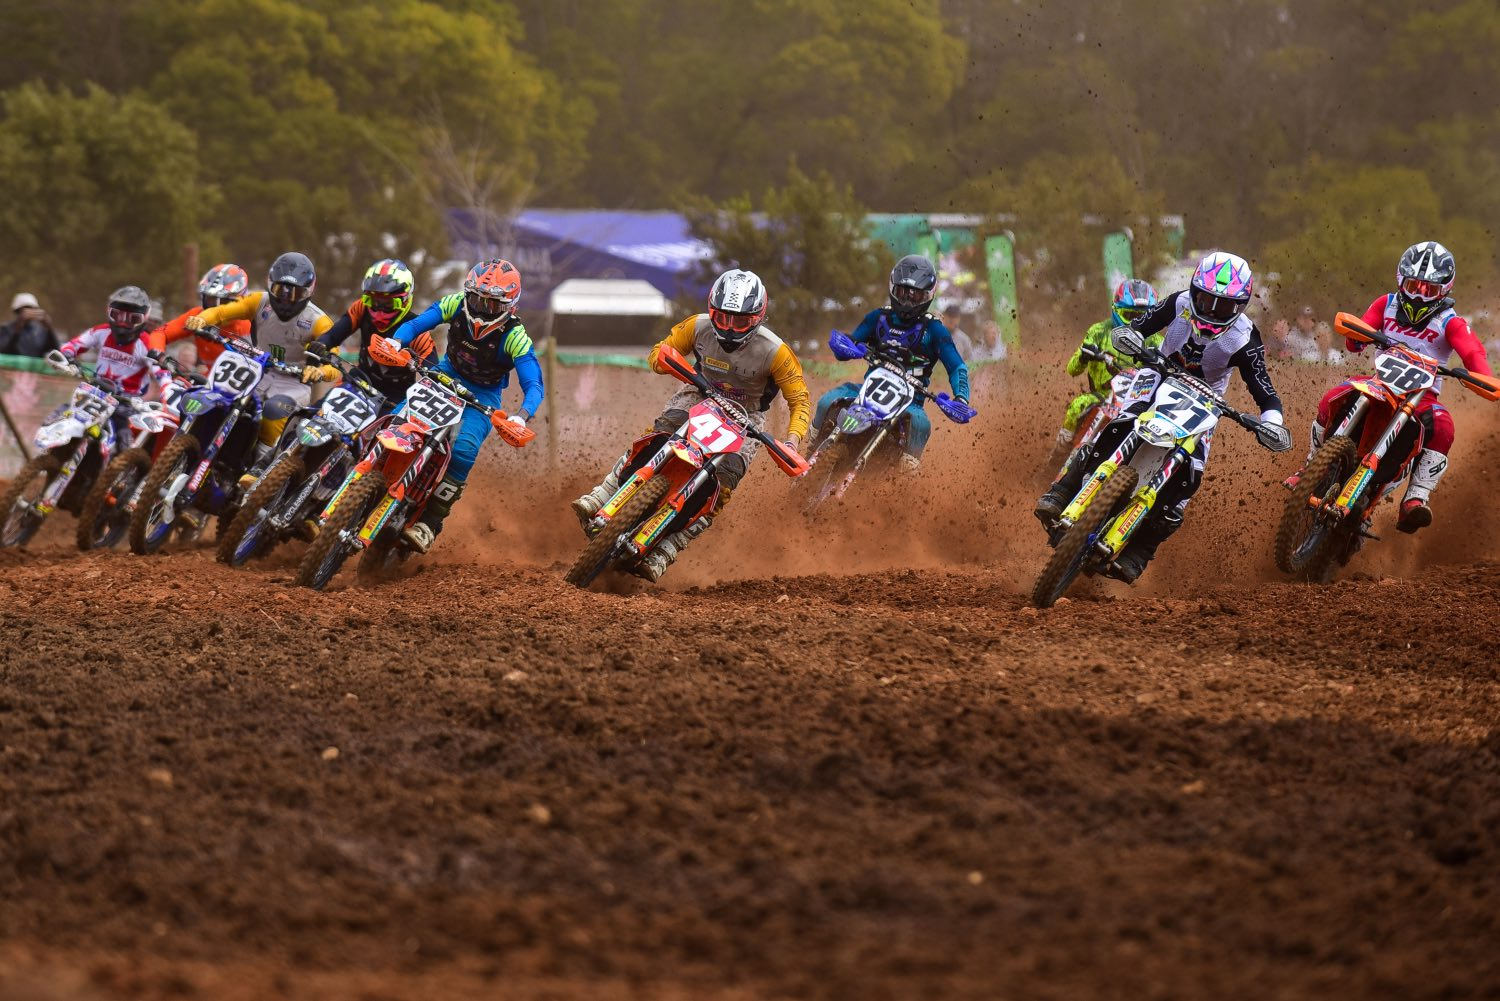 Race report and results from the fifth round of the 2021 South African National Motocross Championship